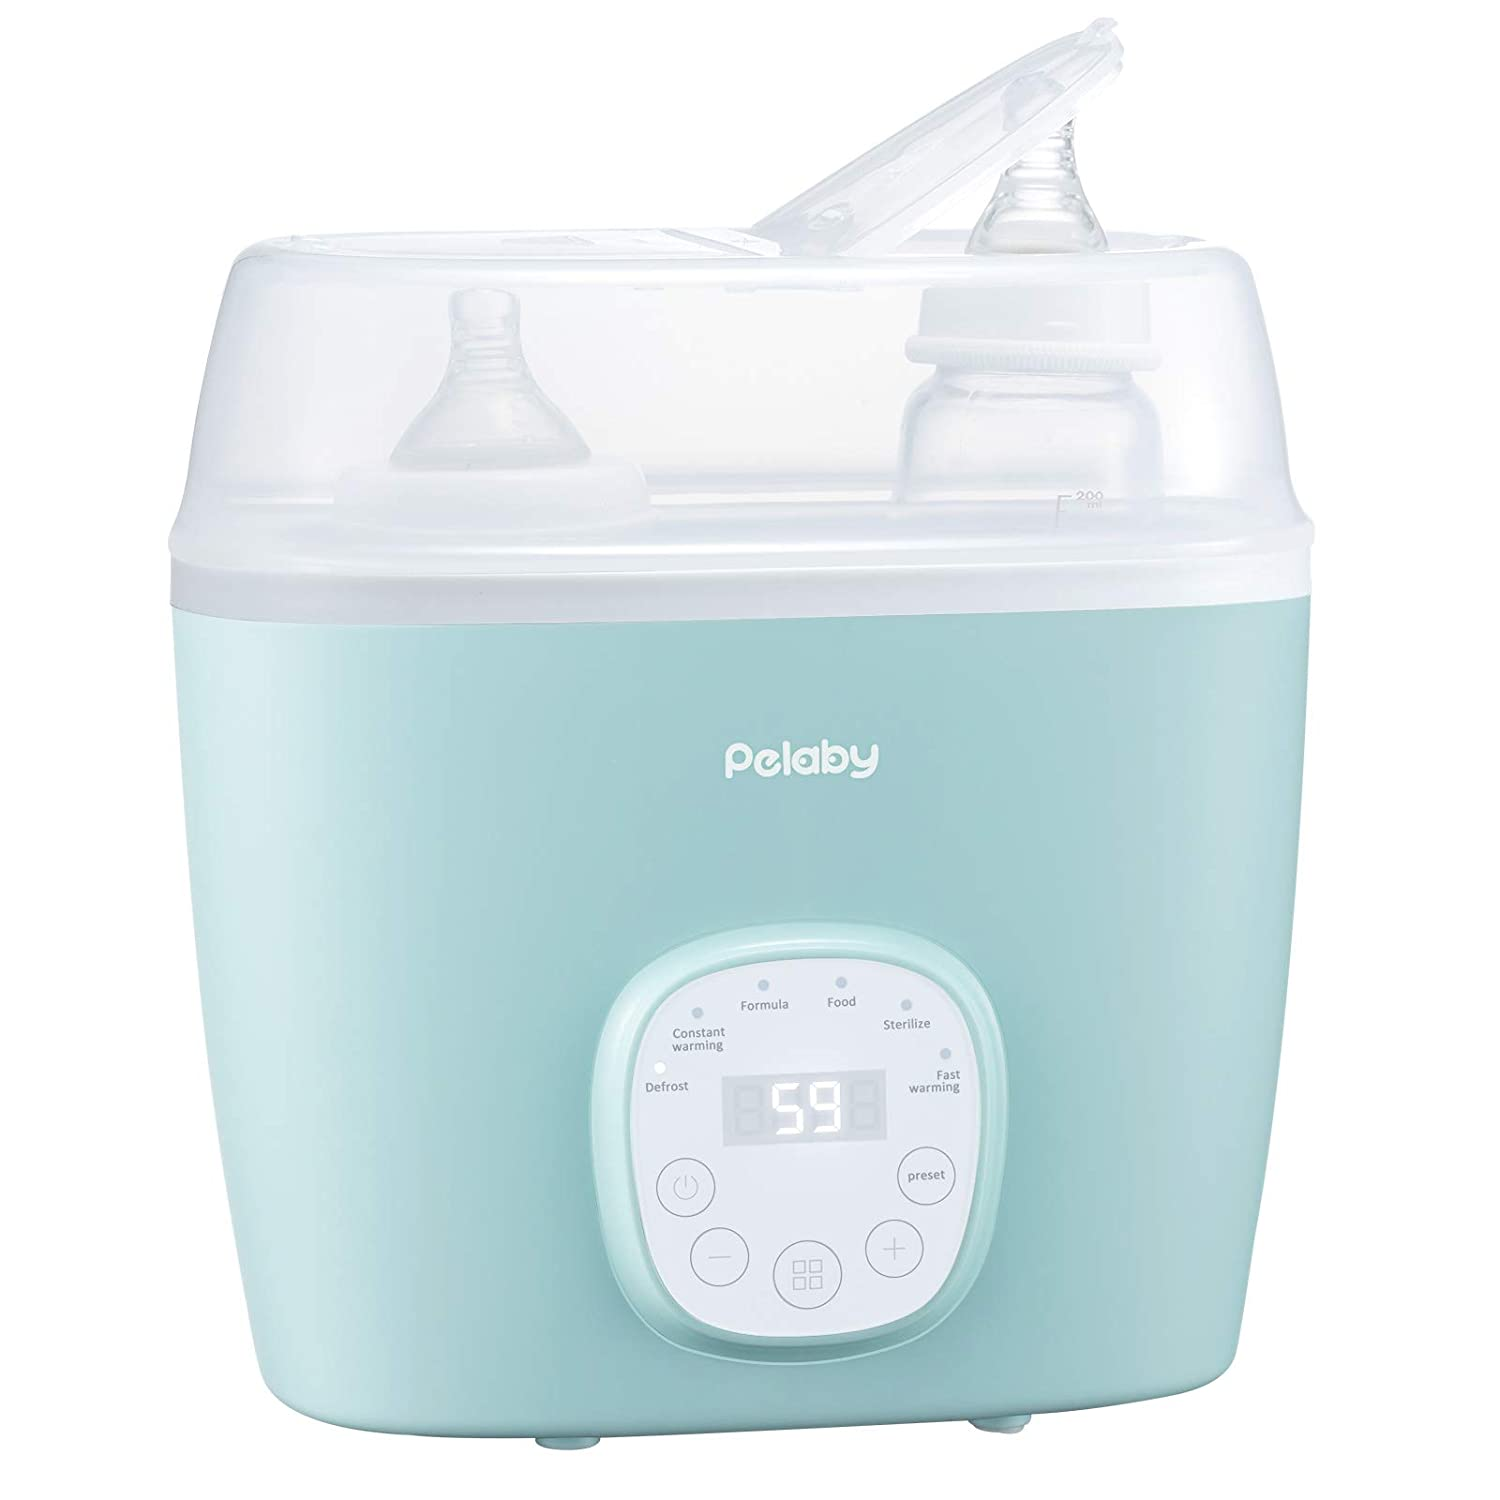 Baby Bottle Warmer Bottle Sterill-zer, Pelaby 6-in-1 BPA-Free Baby Food Heater with Timer, LCD Display, Temperature Control, Defrost Food, Fast Bottle Warmer for Baby Milk and Infant Formula